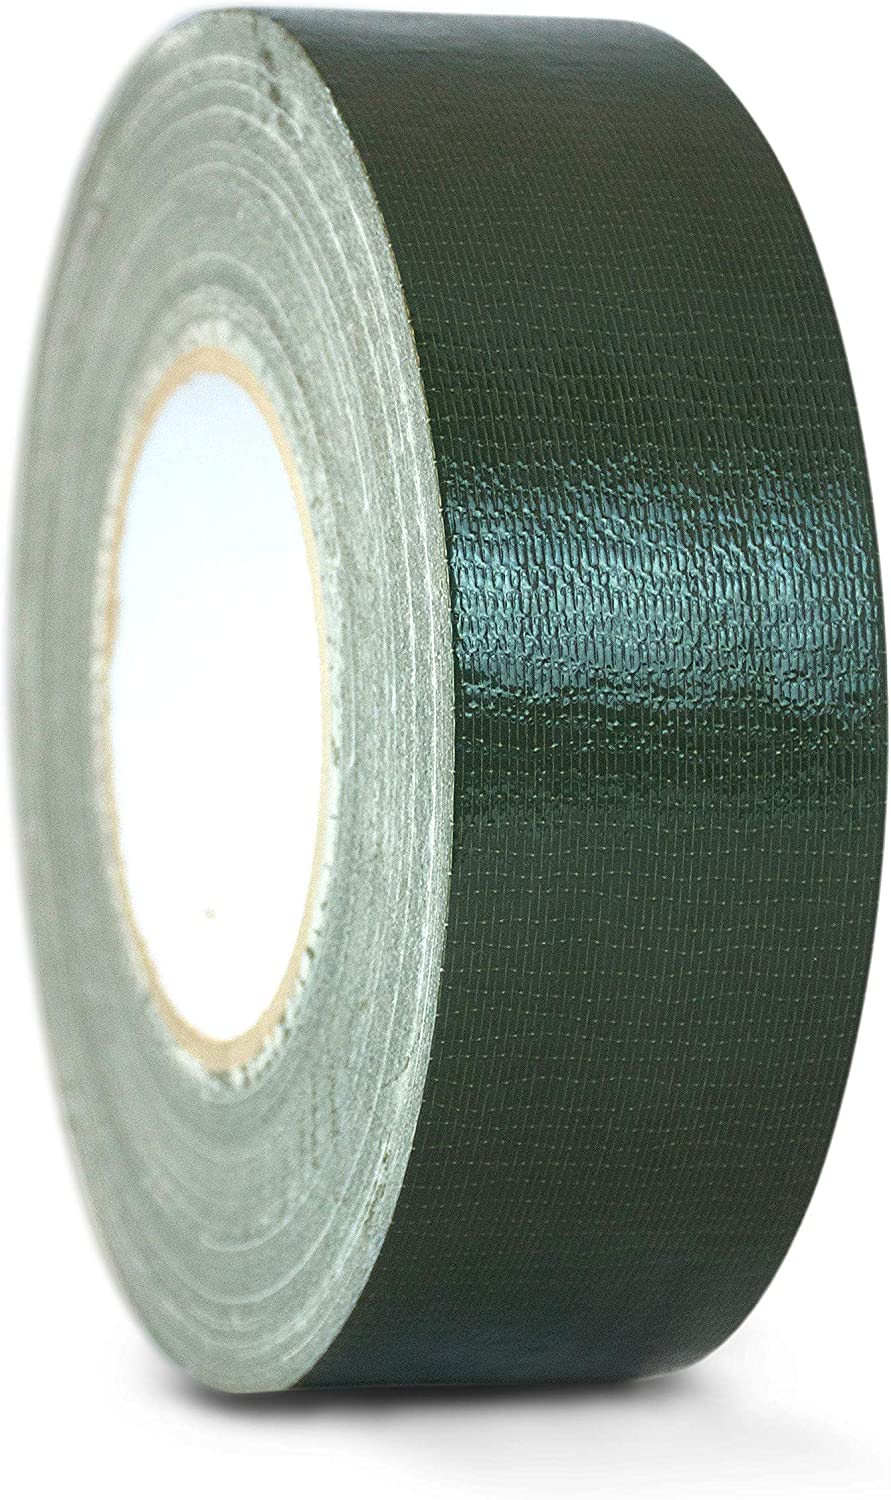 WOD DTC10 Advanced Strength Industrial Grade Olive Drab Duct Tape, 2 inch x 60 yds. Waterproof, UV Resistant For Crafts & Home Improvement